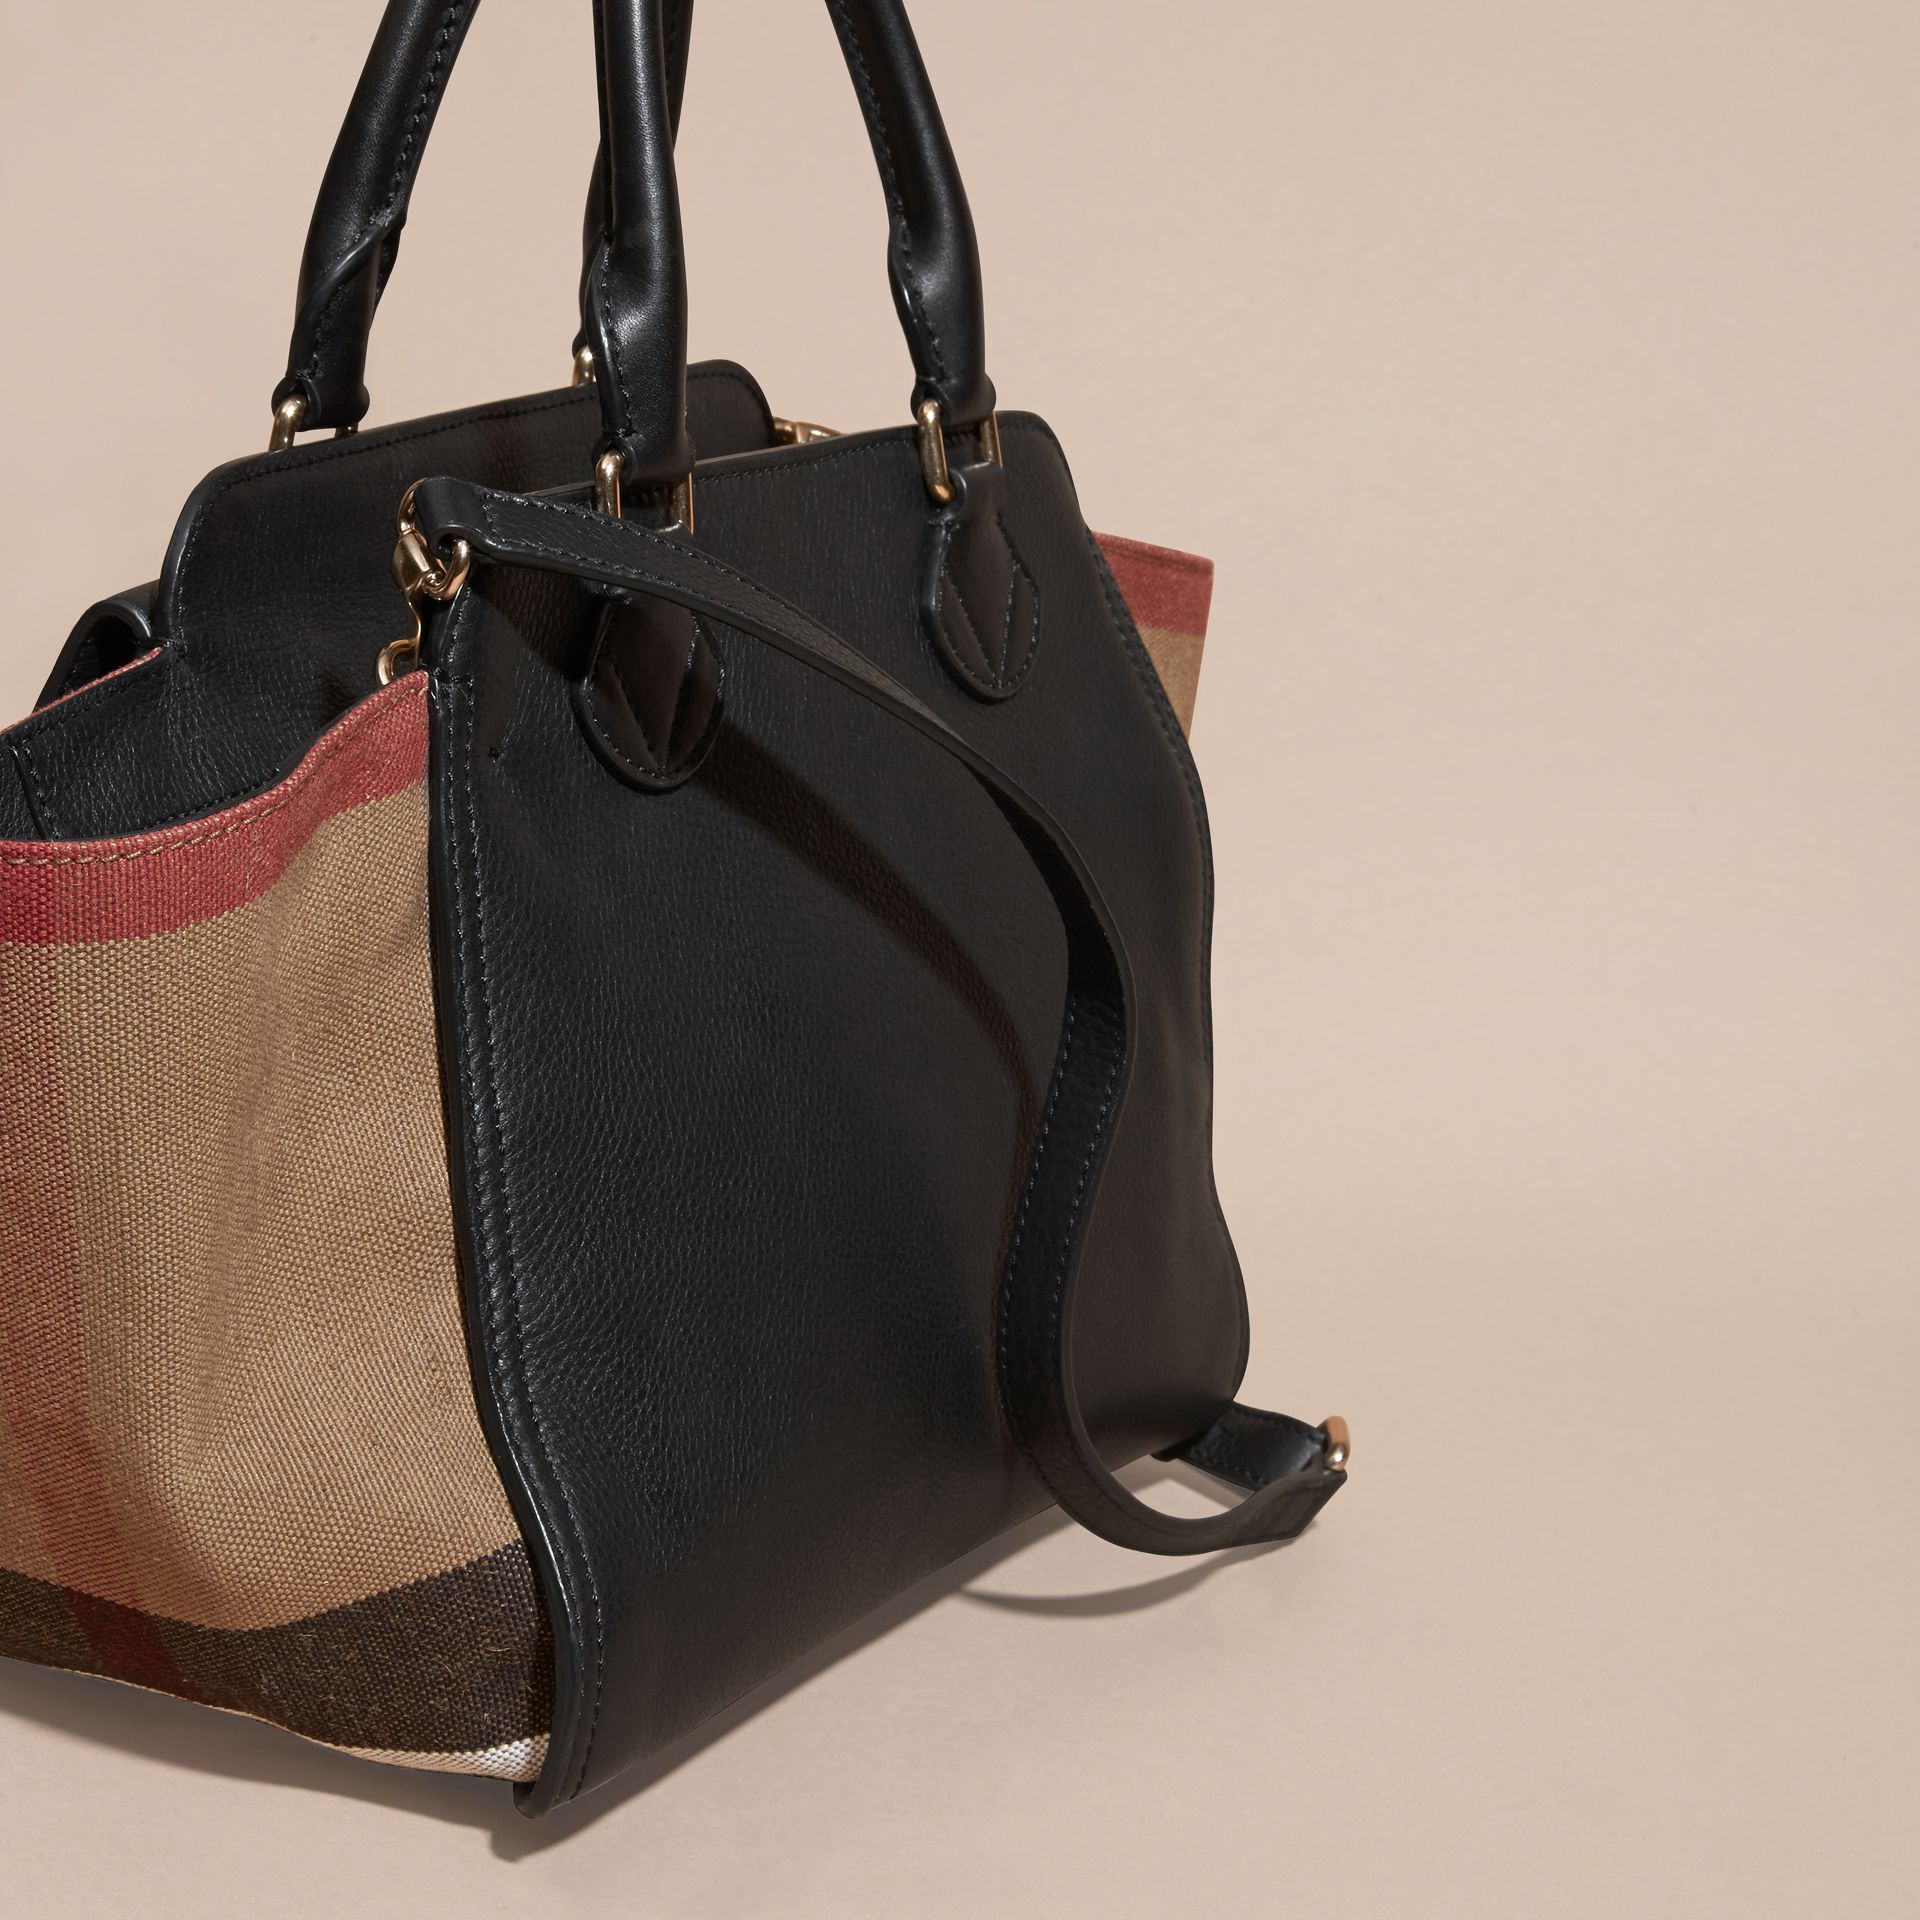 Black Medium Canvas Check and Leather Tote Bag Black - gallery image 4